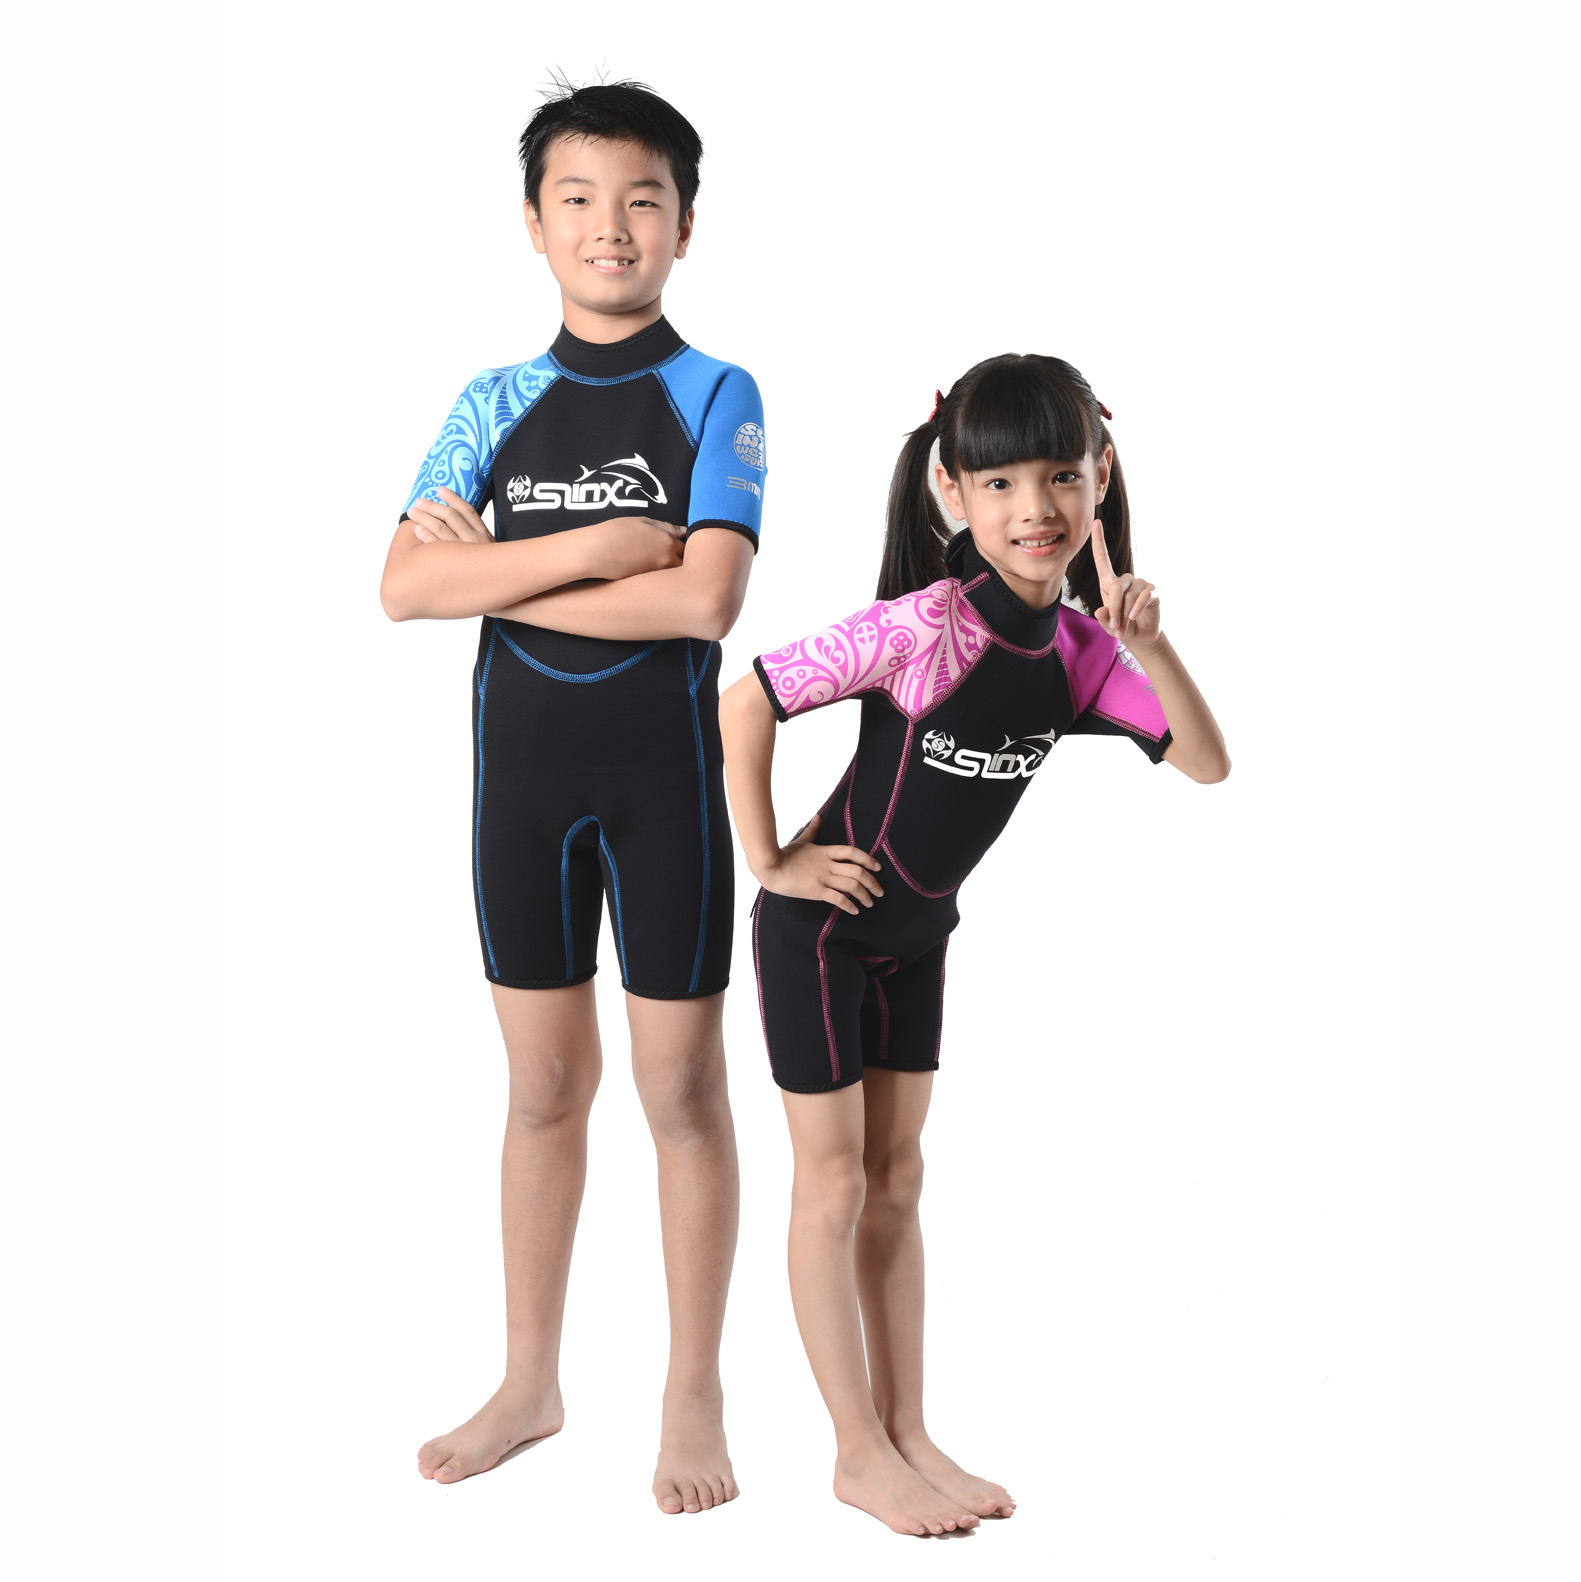 Slinx child for 3m m submersible short sleeve suit warm sunscreen swimwear red green blue